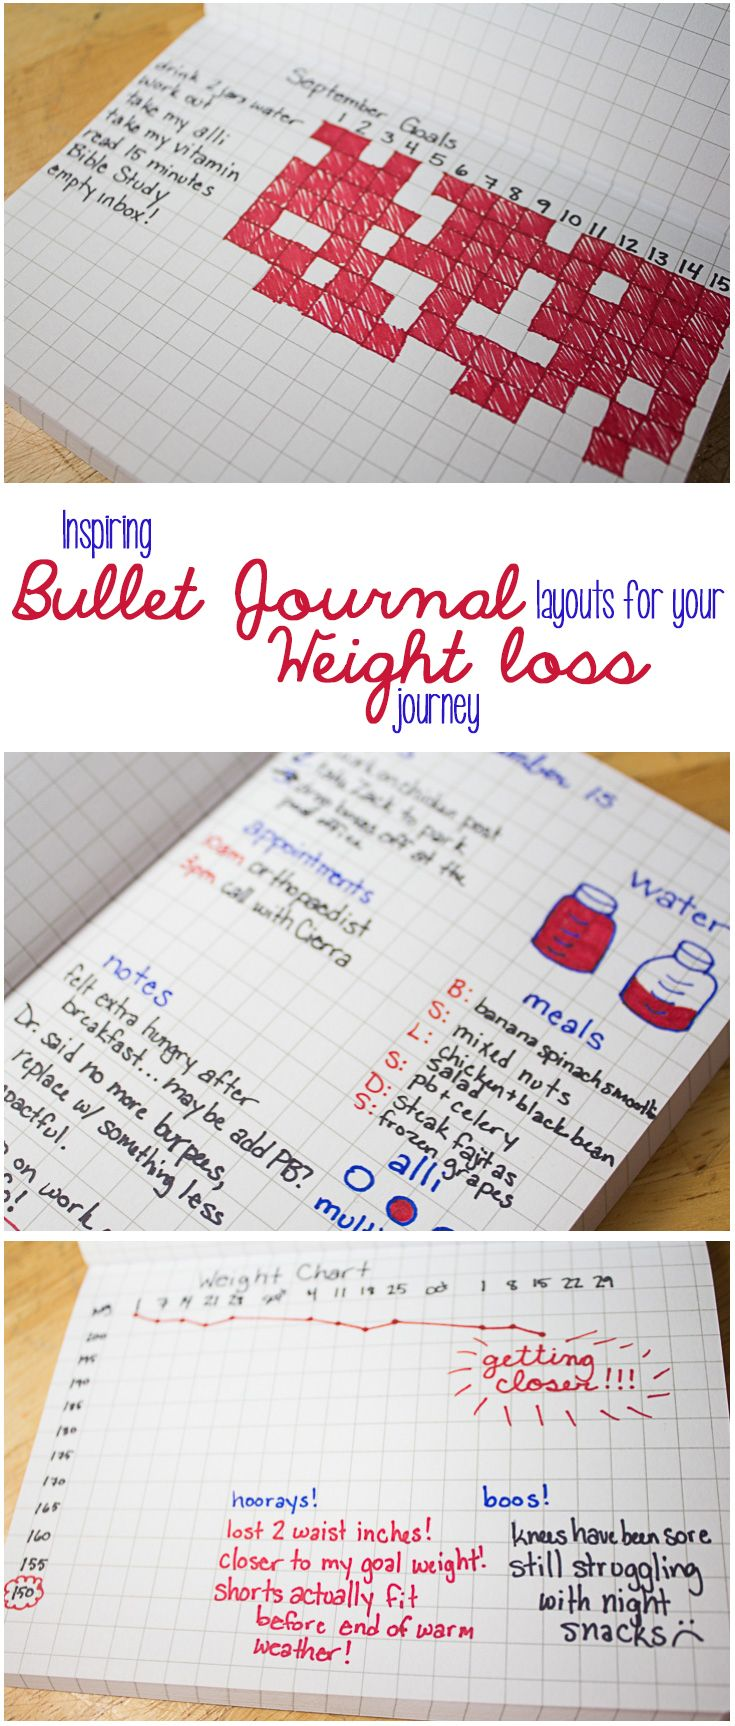 If you love bullet journaling and want to lose weight, here are some layout ideas to get you started on the right path! With a plan, a good bullet journal layout, proper diet and exercise, and a little boost from alli, you'll start seeing results! Planning and tracking is a great way to get yourself in gear. | New Years Resolution | Bullet Journal | New Year | New Year New Me | Weight Loss | #alliInMyLife #after [ad]